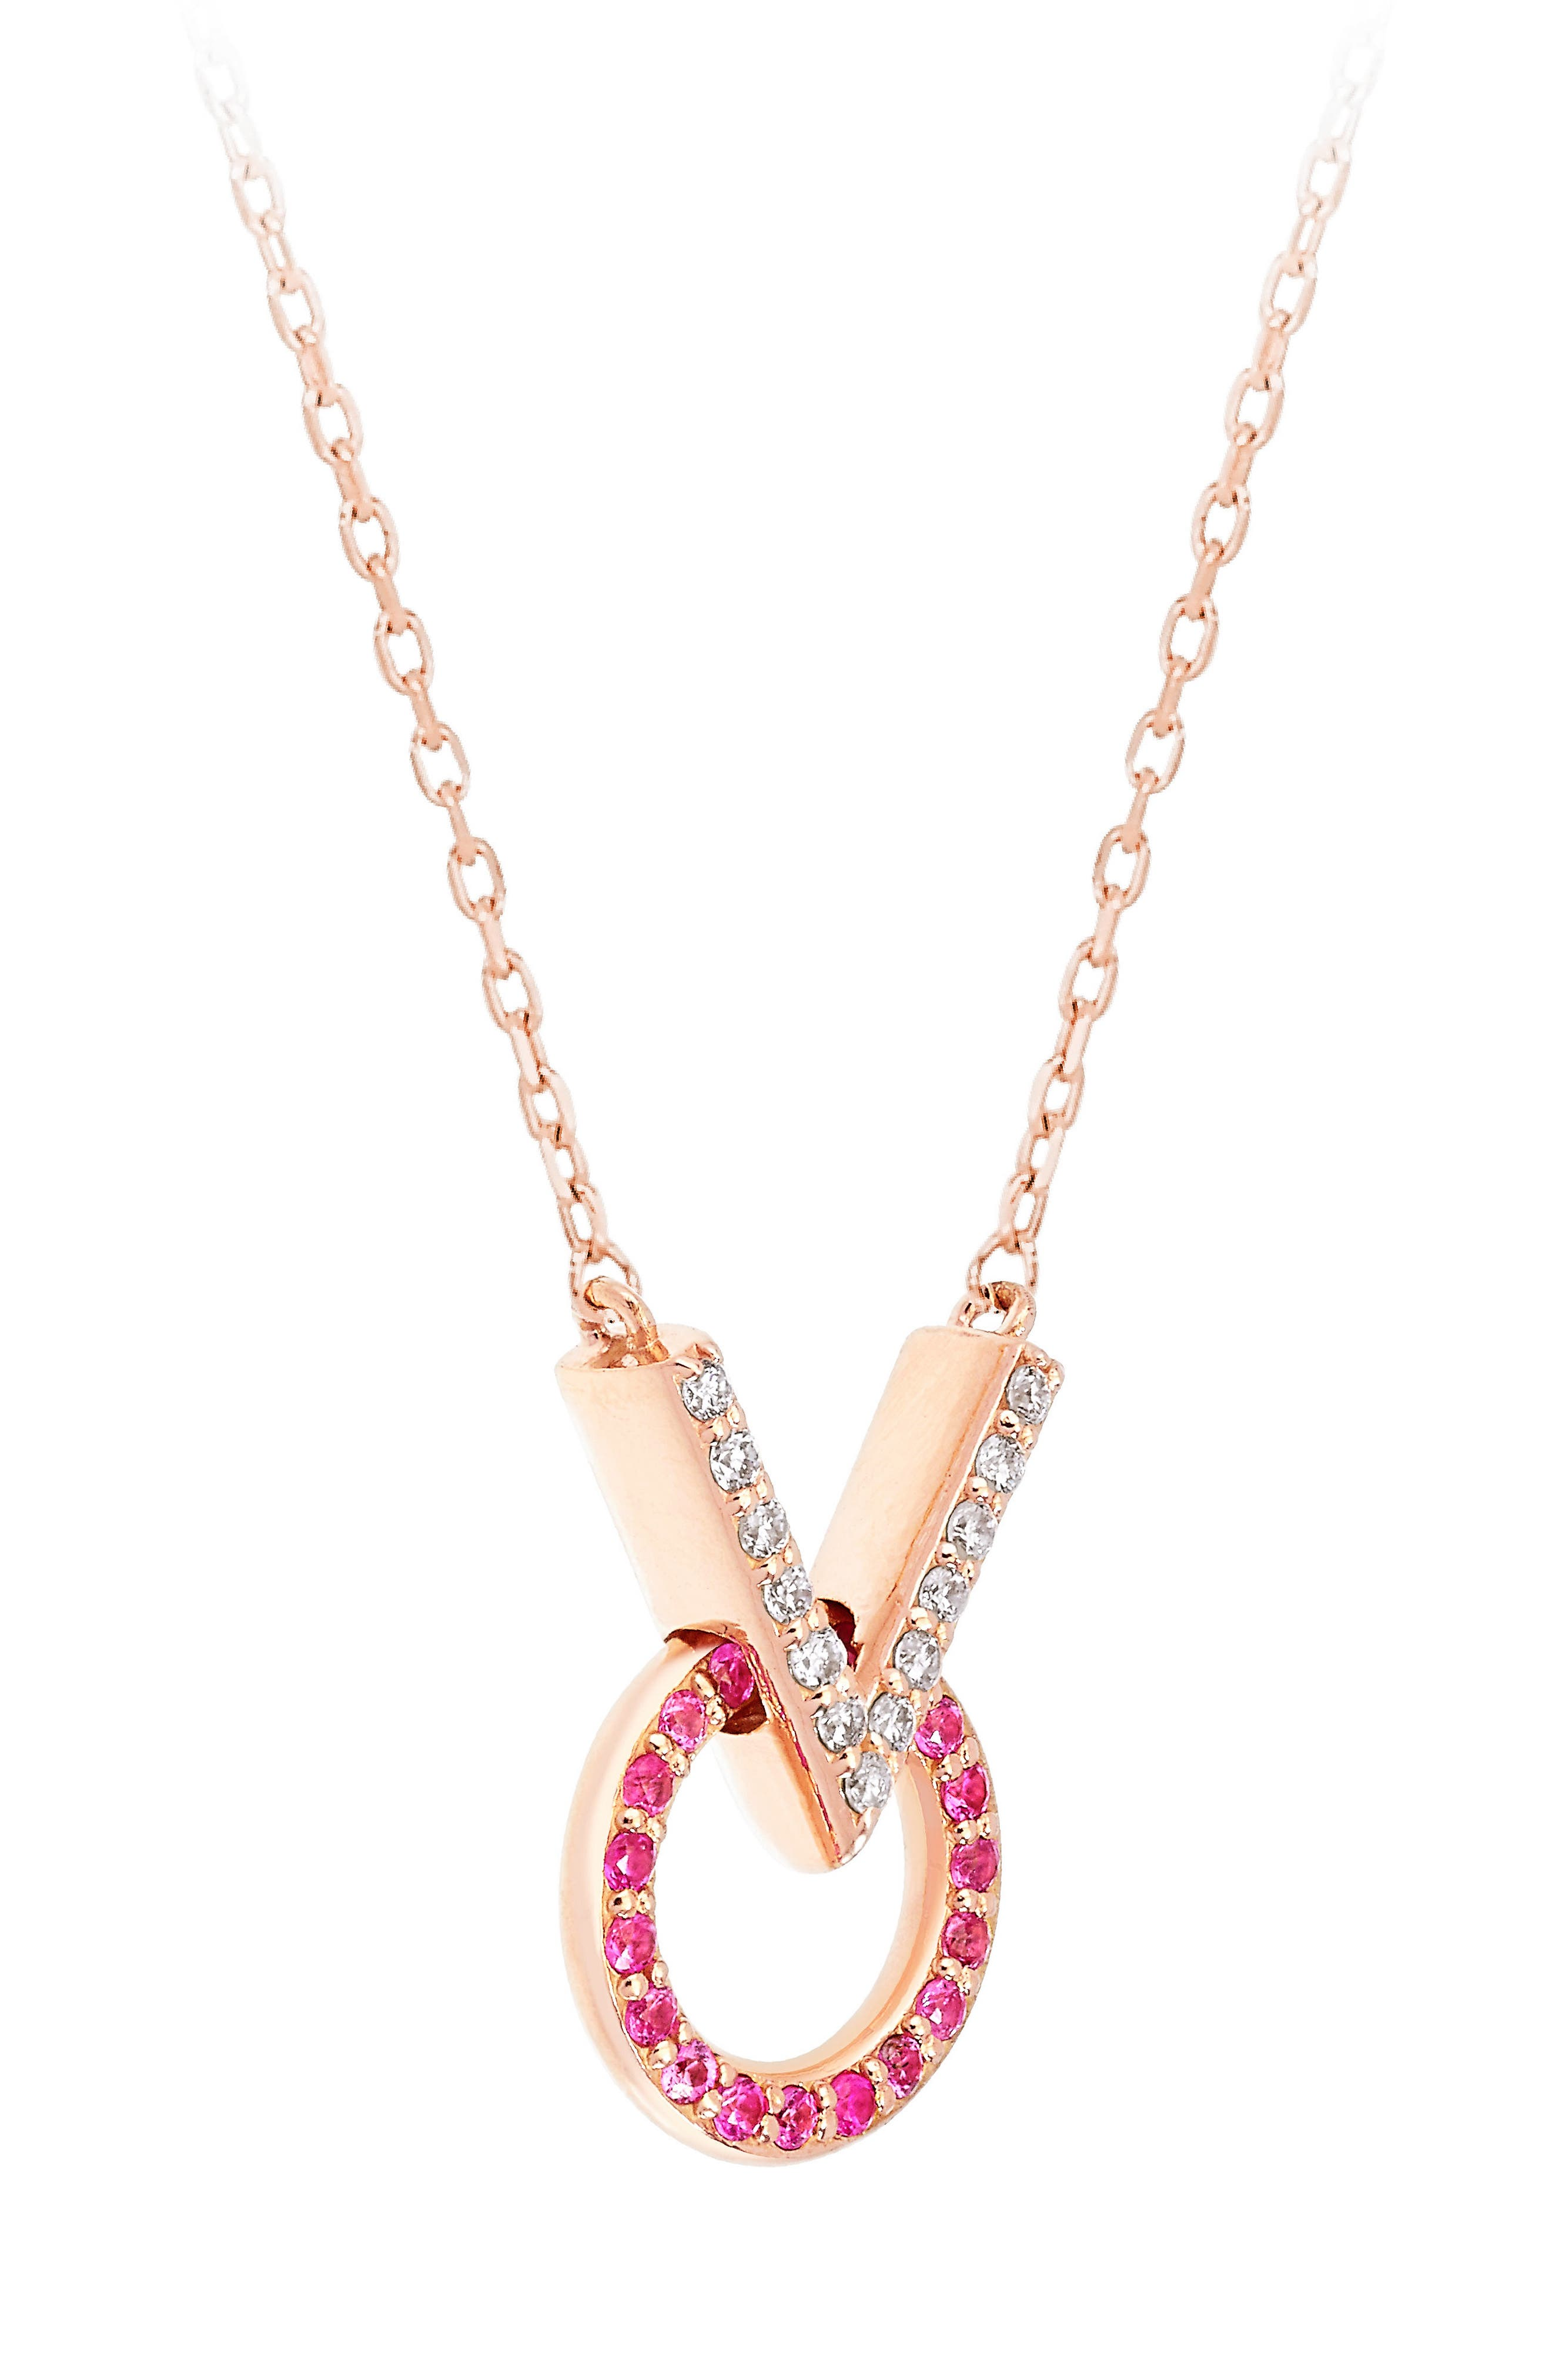 Baby Memphis V Round Diamond & Pink Sapphire Necklace,                             Alternate thumbnail 2, color,                             Rose Gold/ Pink Sapphire